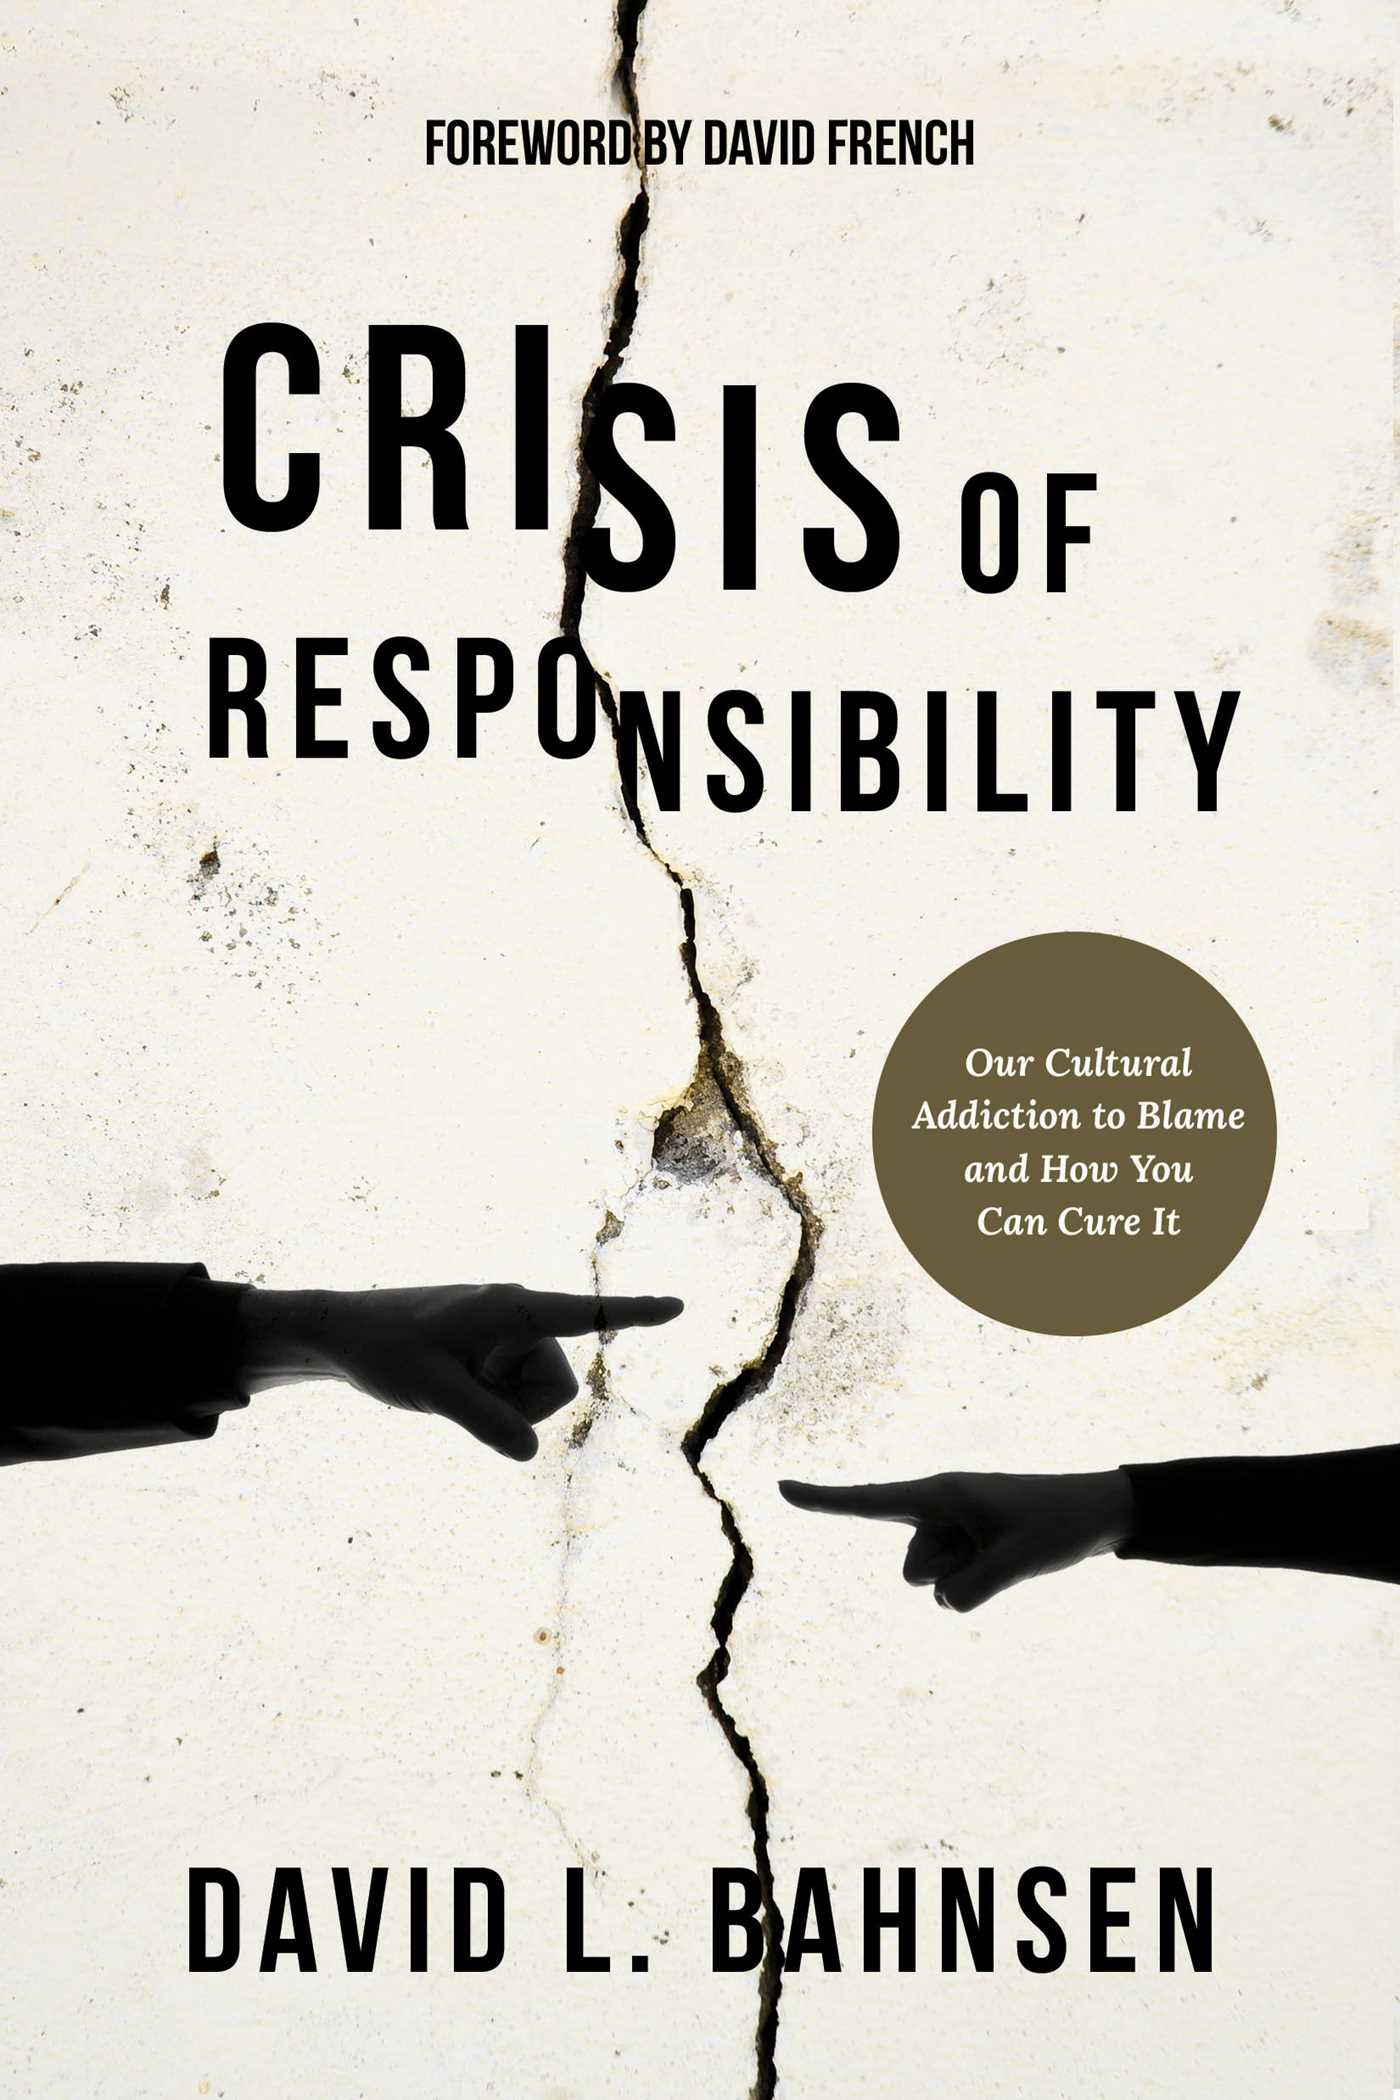 Crisis of responsibility 9781682616253 hr